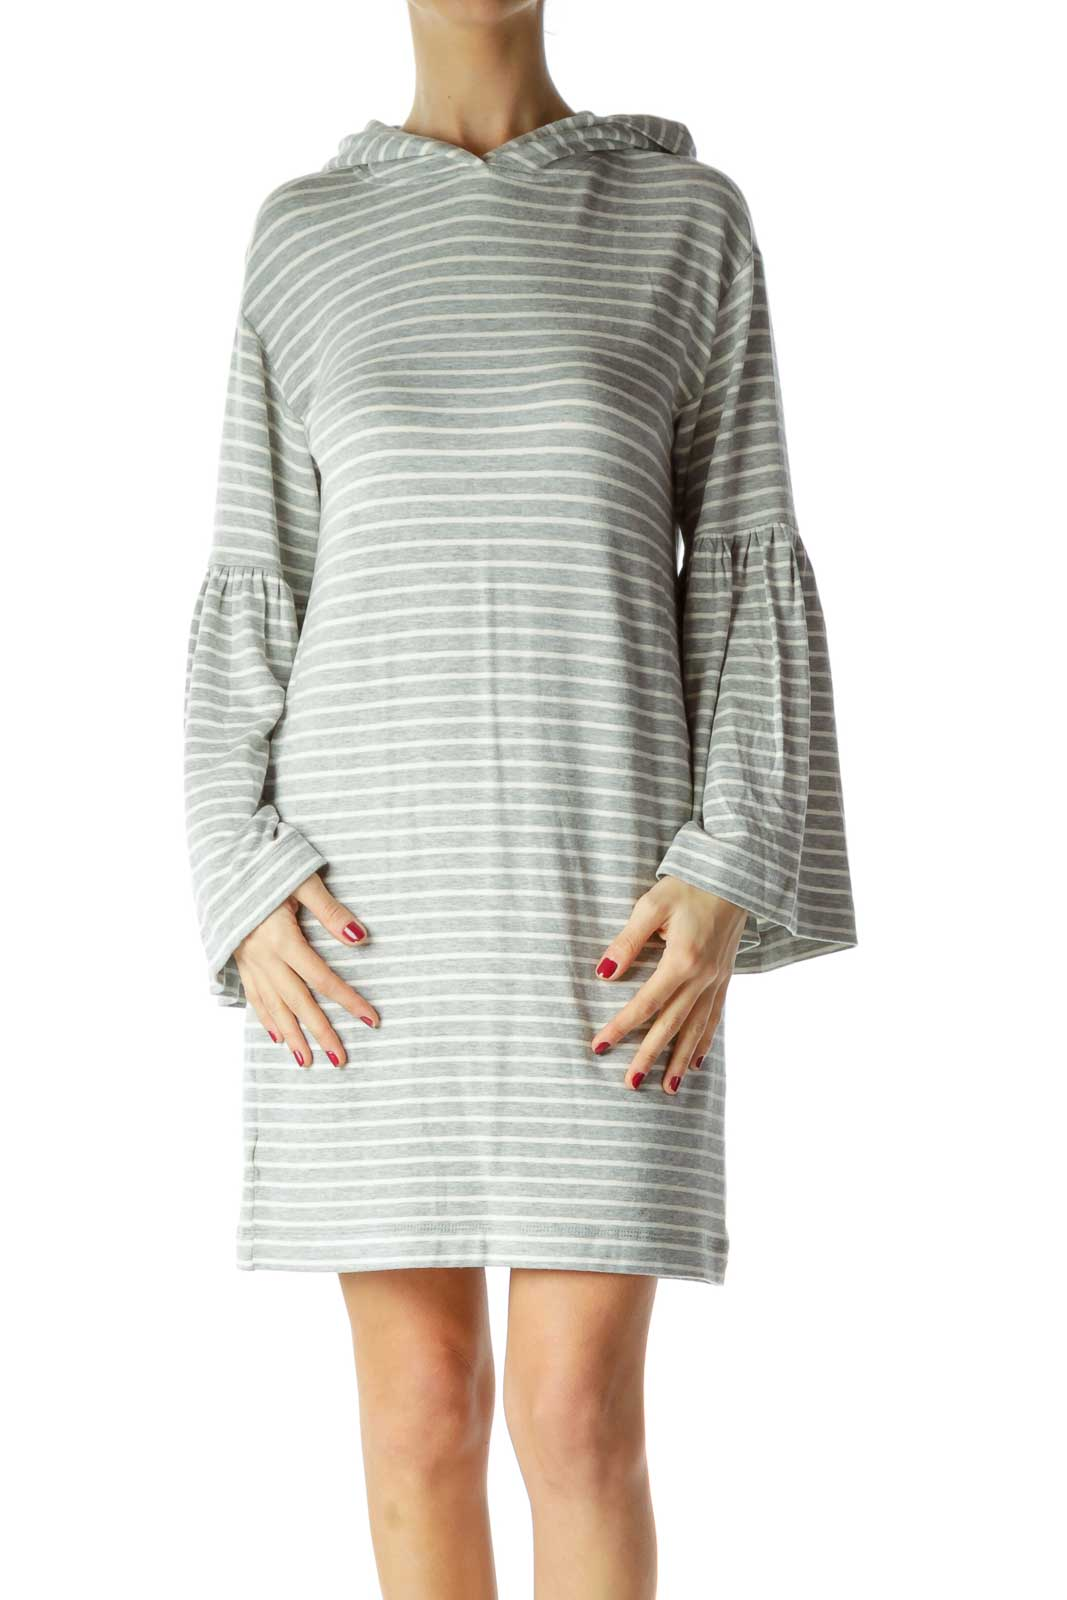 Gray White Striped Jersey-Knit Dress with Hood